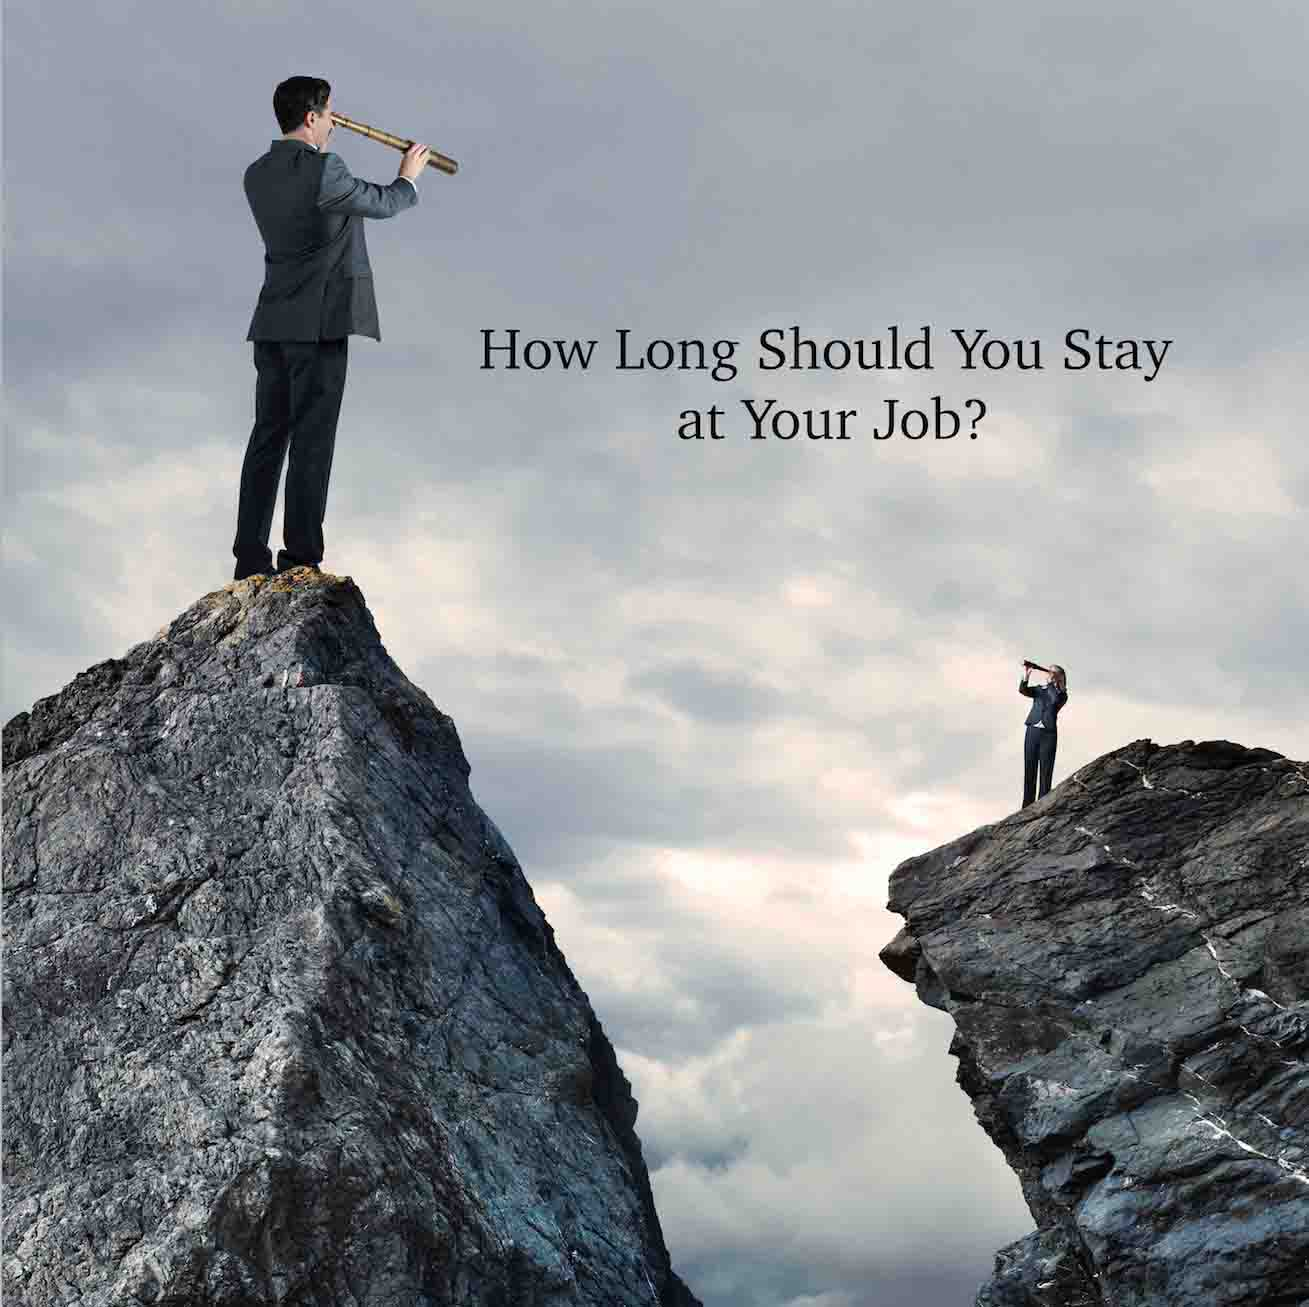 How Long Should You Stay at Your Job